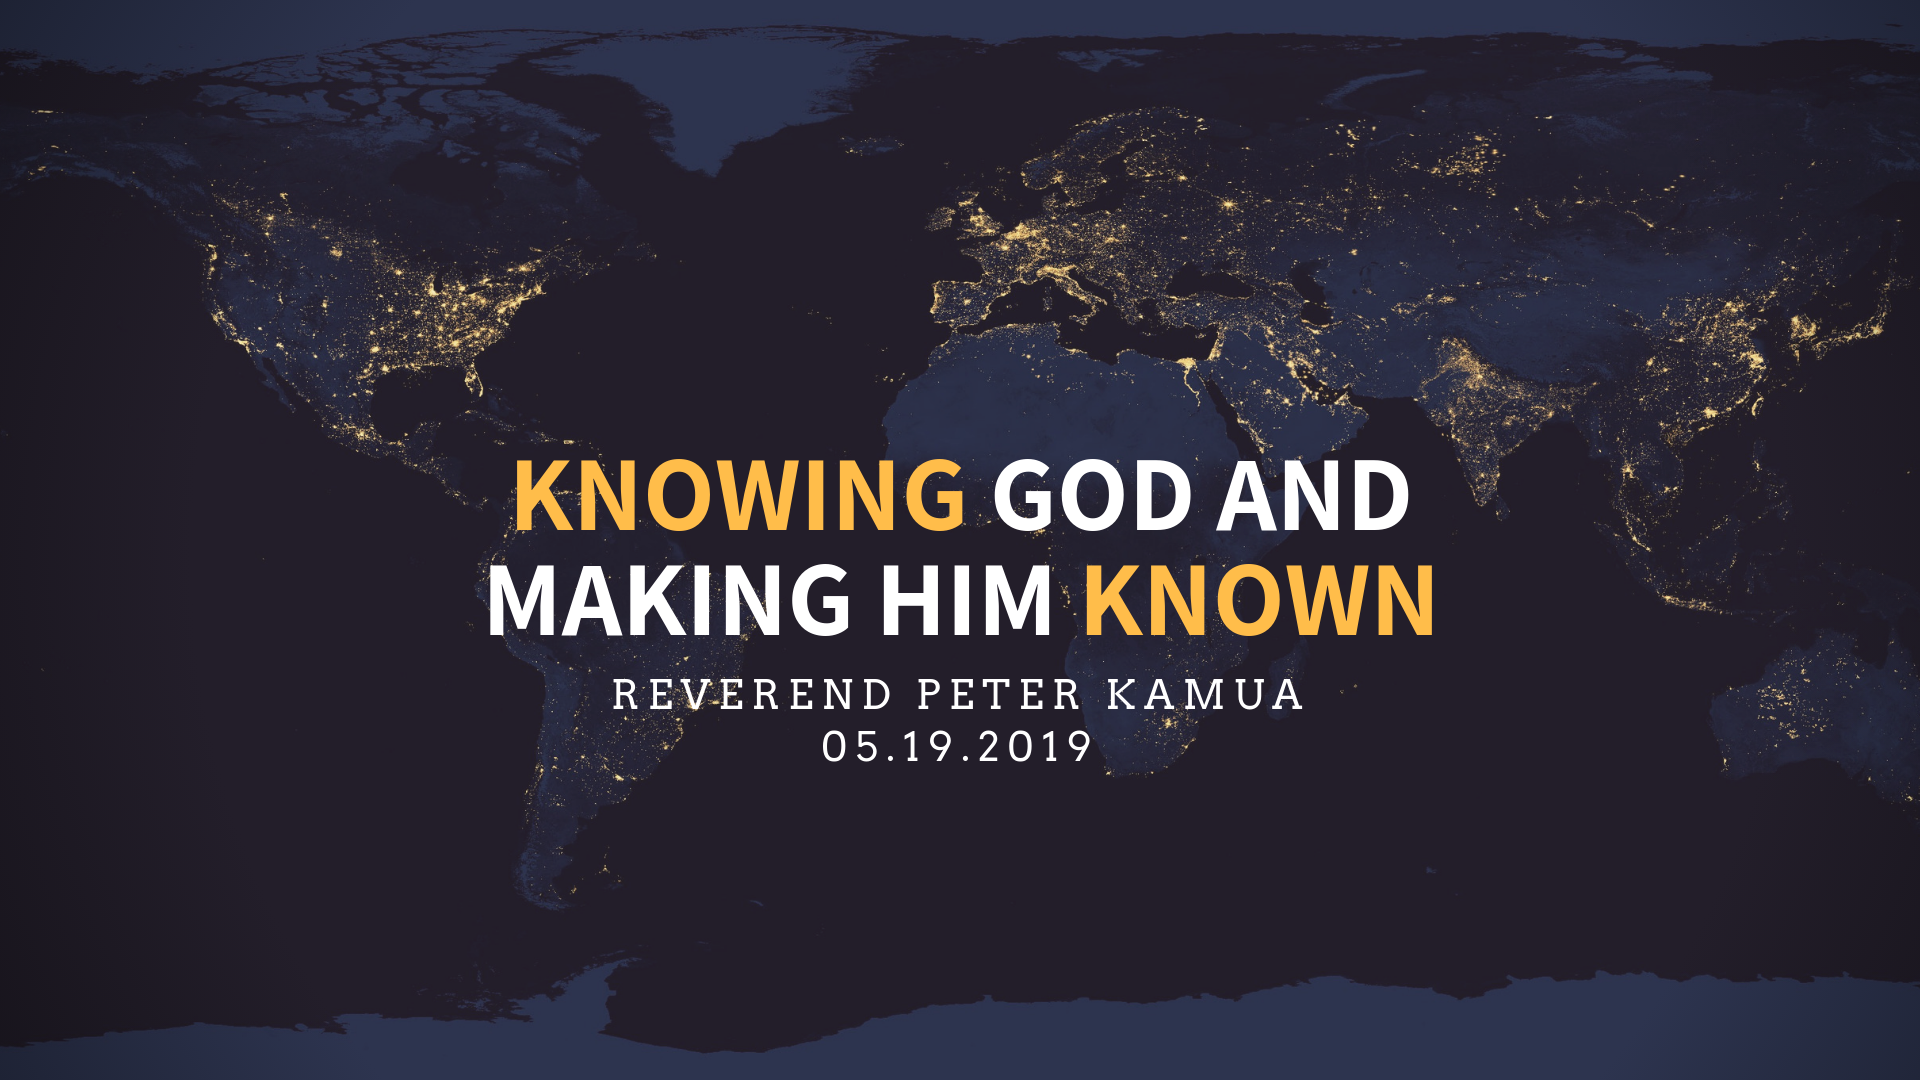 Knowing God and Making Him Known